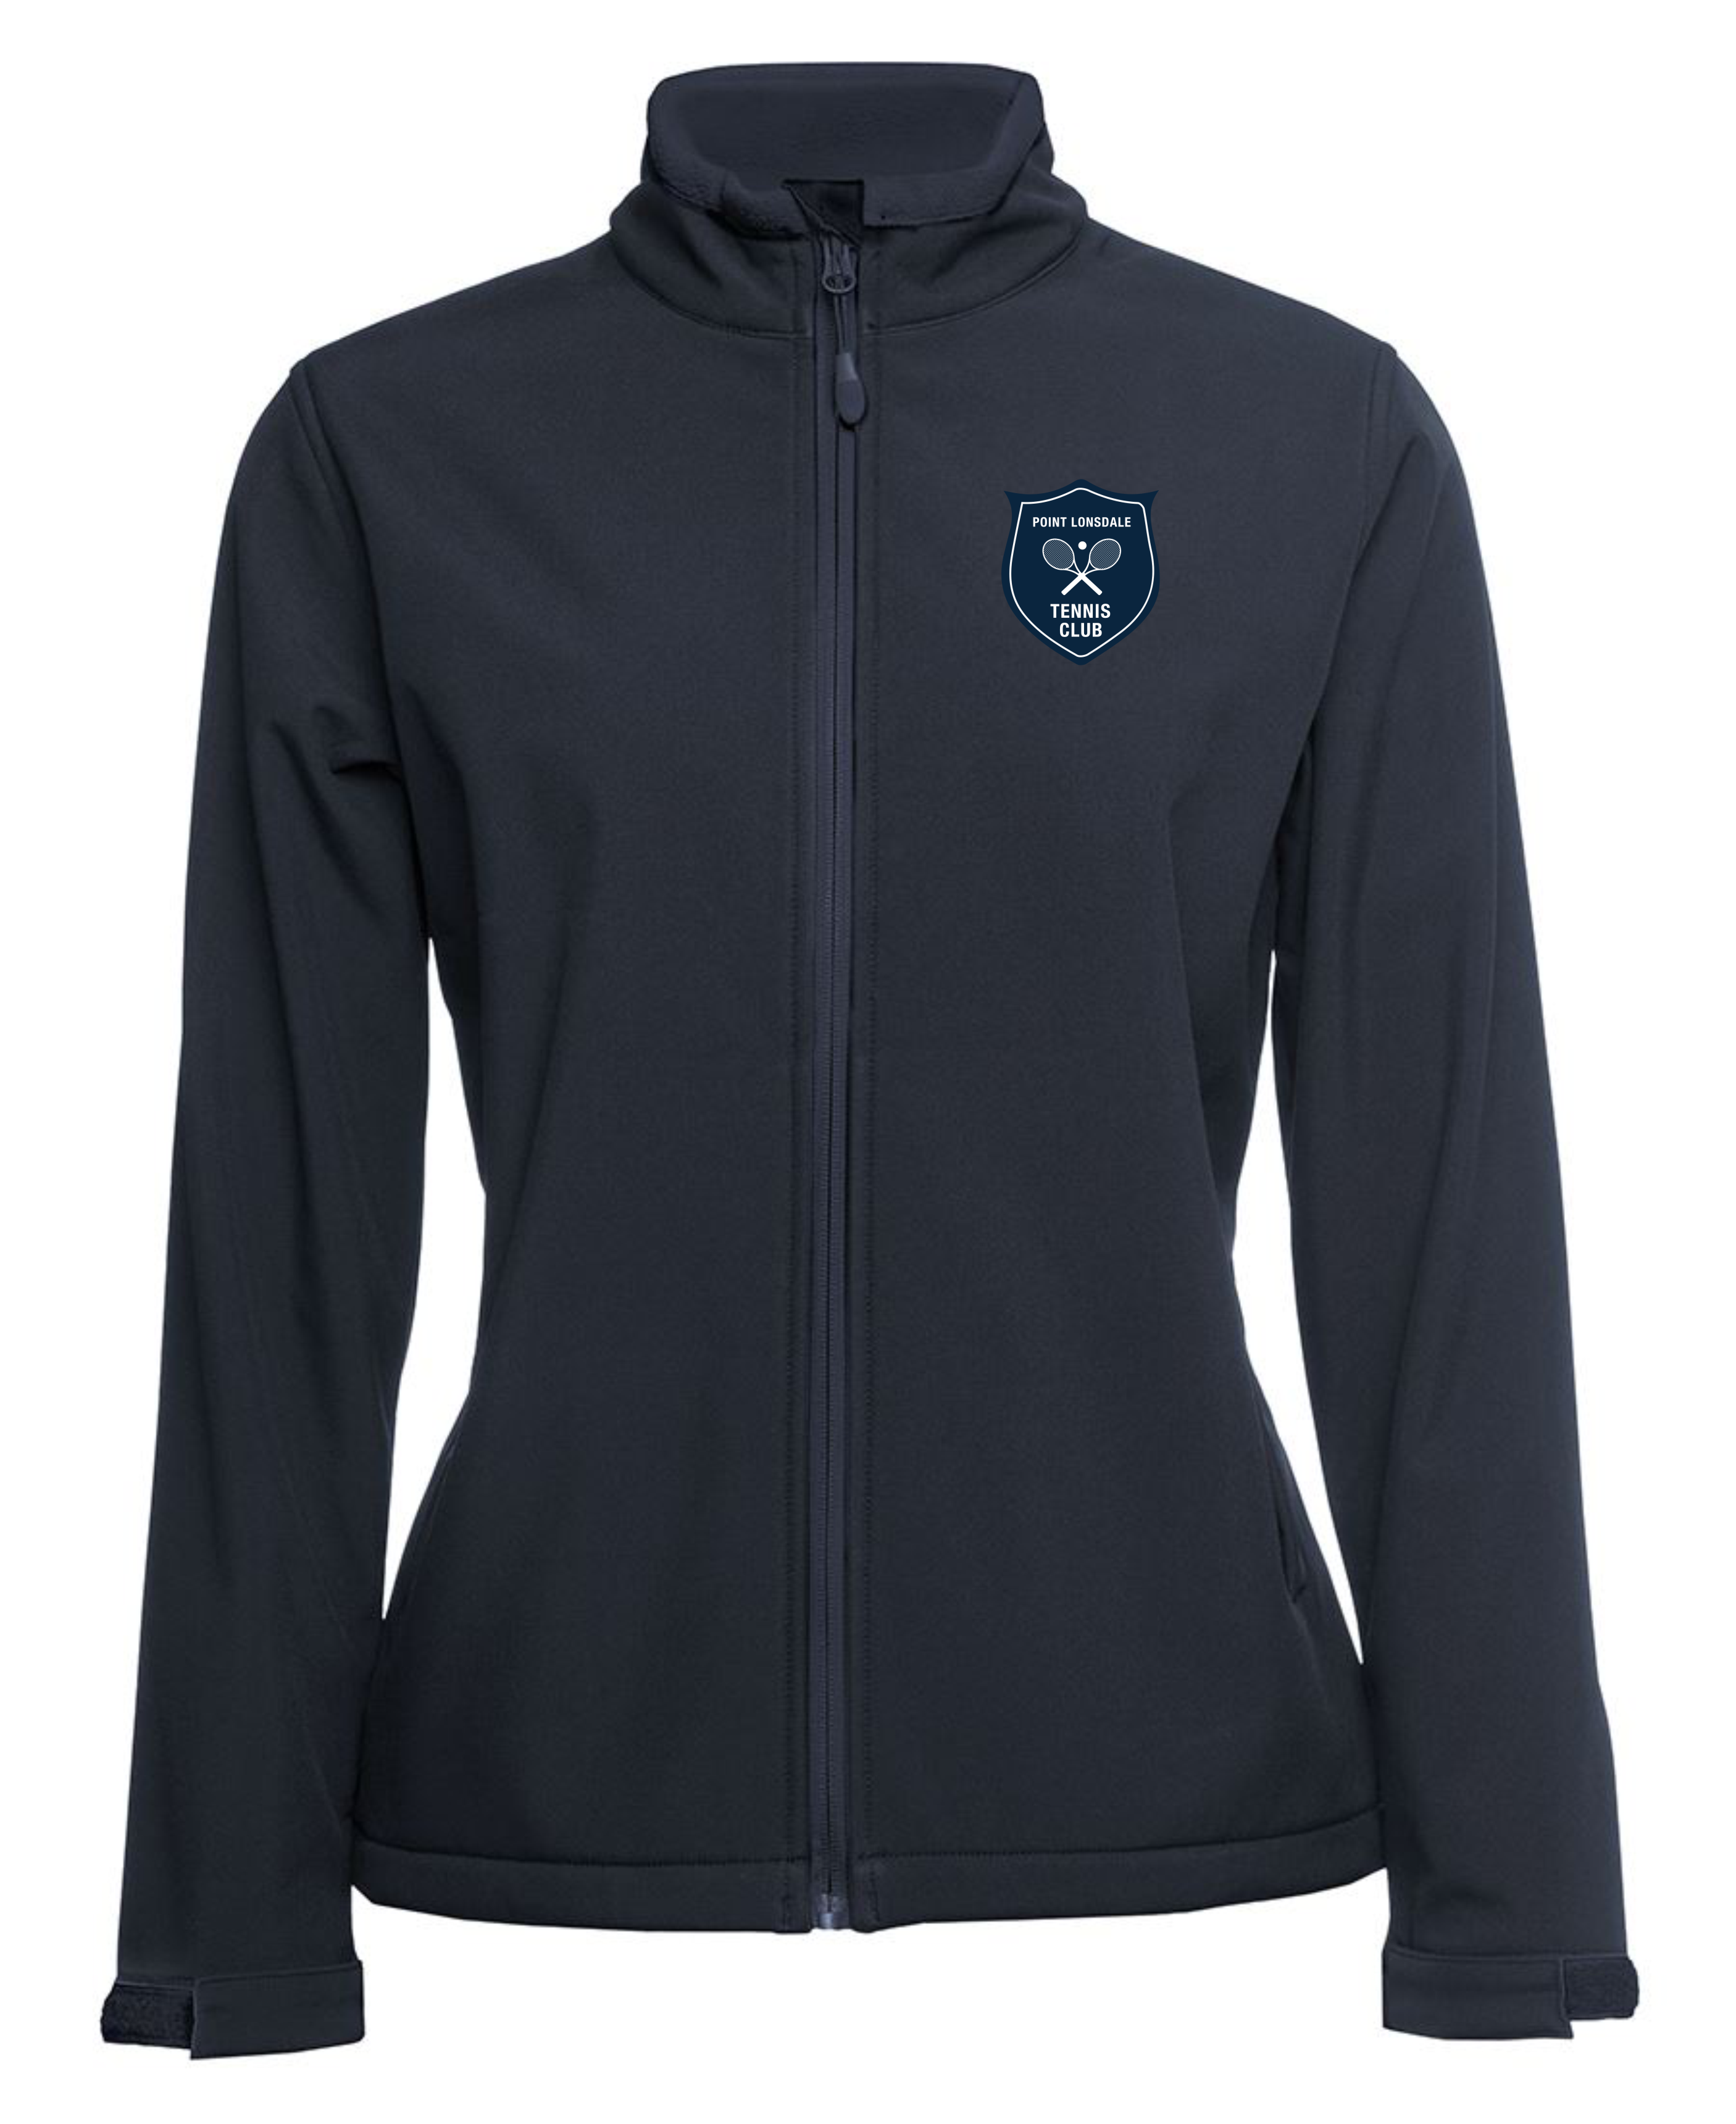 Ladies Water Resistant Soft Shell Jacket in Navy